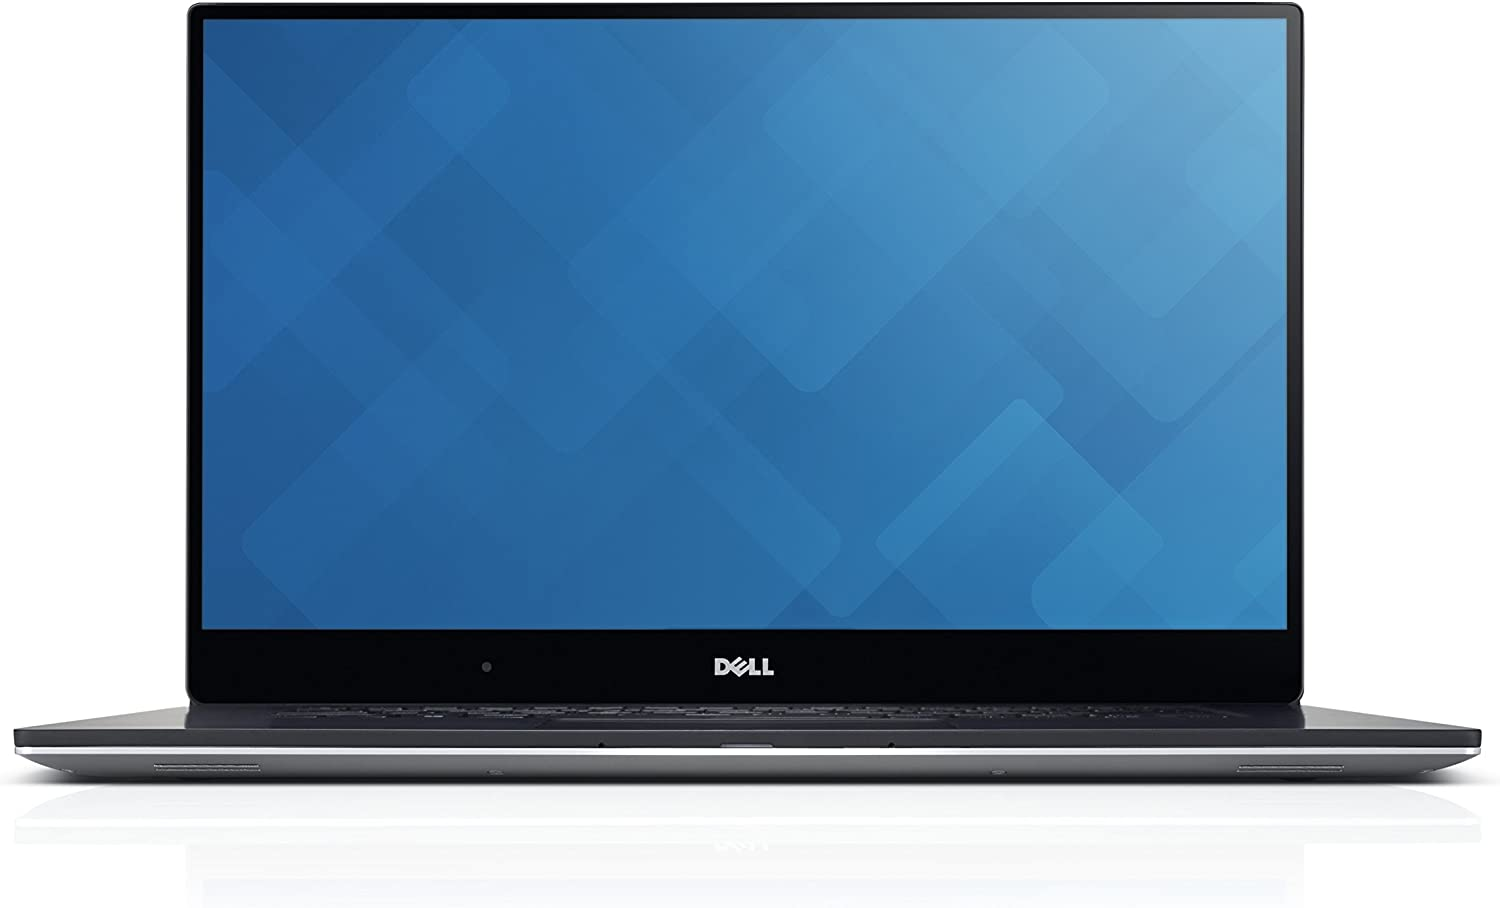 Dell XPS 15 9560 4K UHD TOUCHSCREEN Intel Core i7-7700HQ 16GB RAM 1TB SSD Nvidia GTX 1050 4GB GDDR5 Windows 10 Home (Renewed)